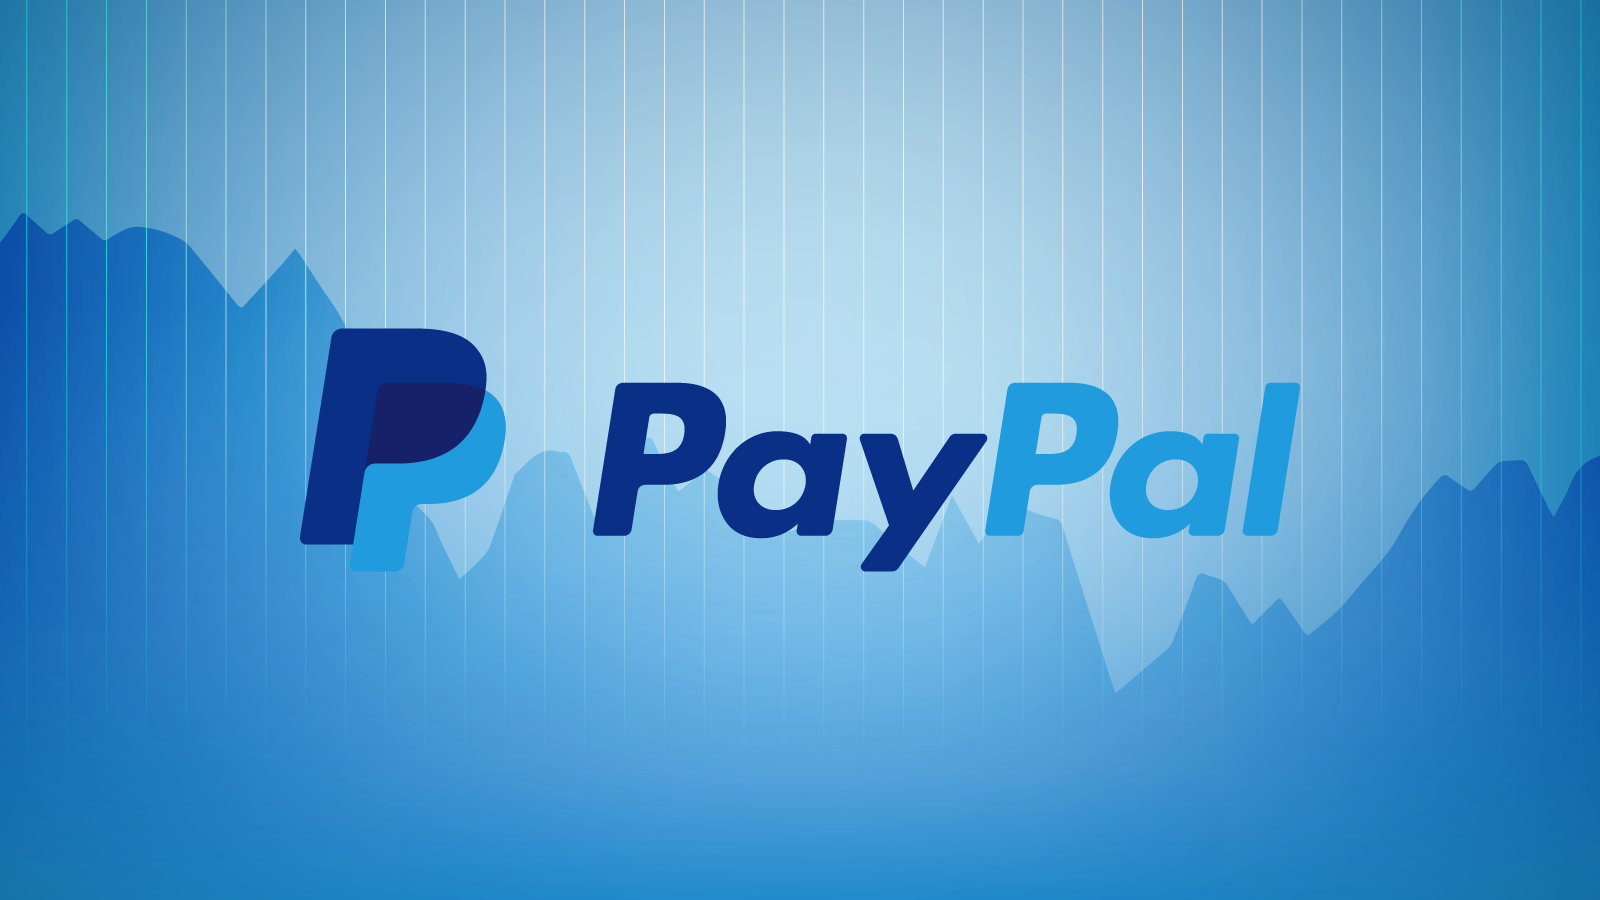 PayPal going to transfer its business to Google cloud services soon